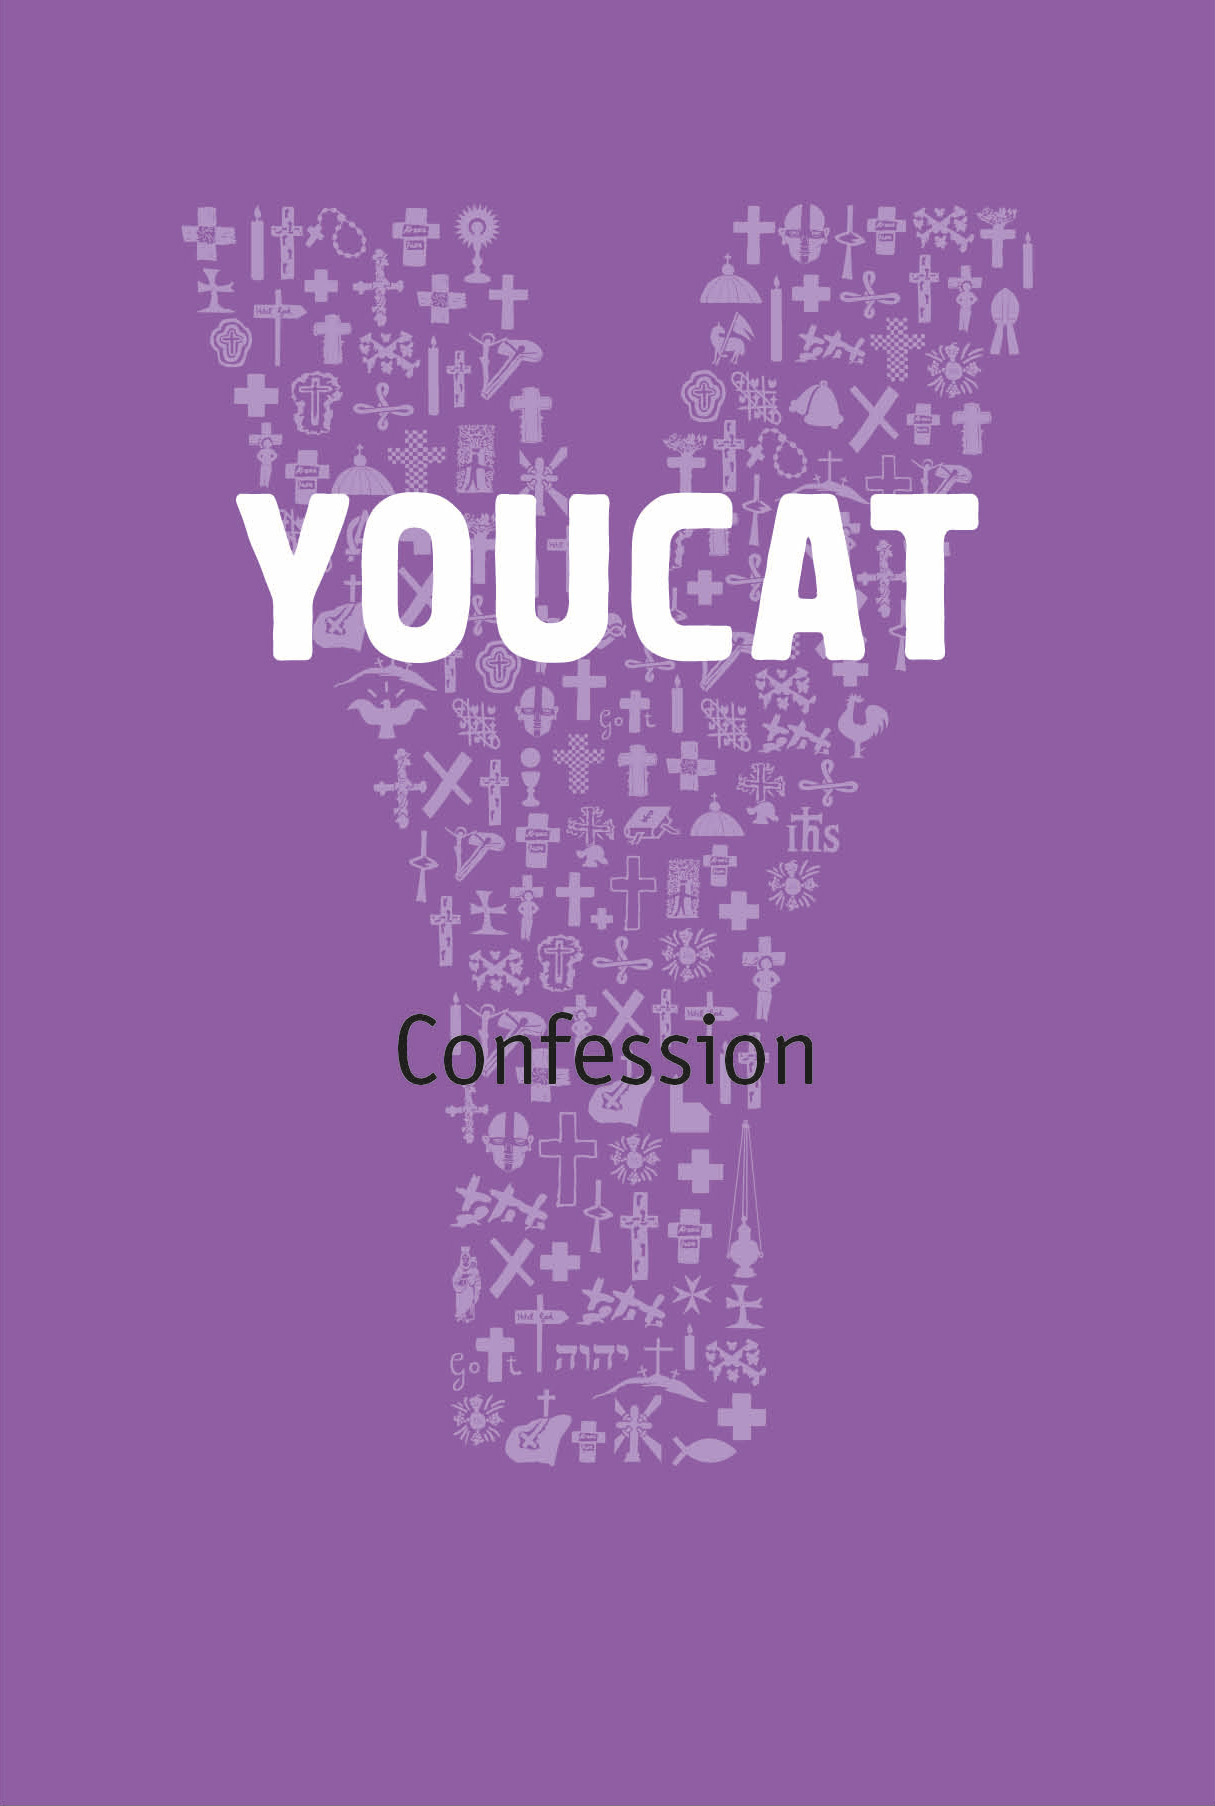 YOUCAT CONFESSION